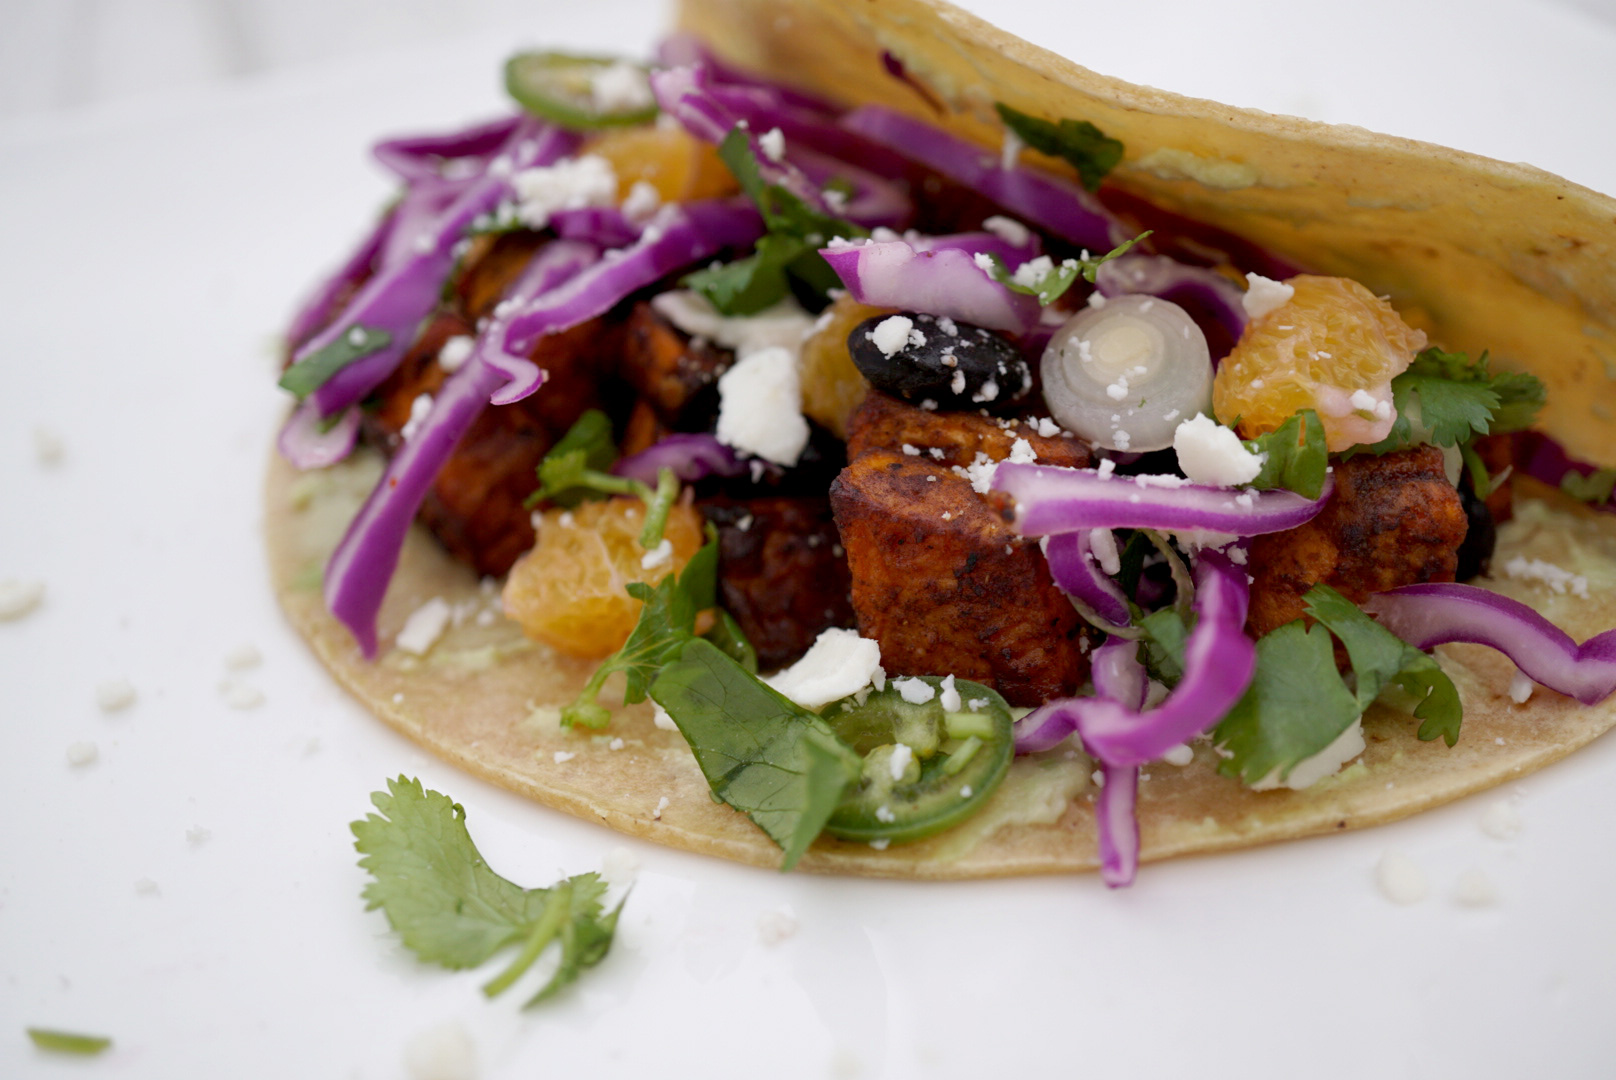 Sweet Potato Taco - with añejo, black beans and seasonal toppings